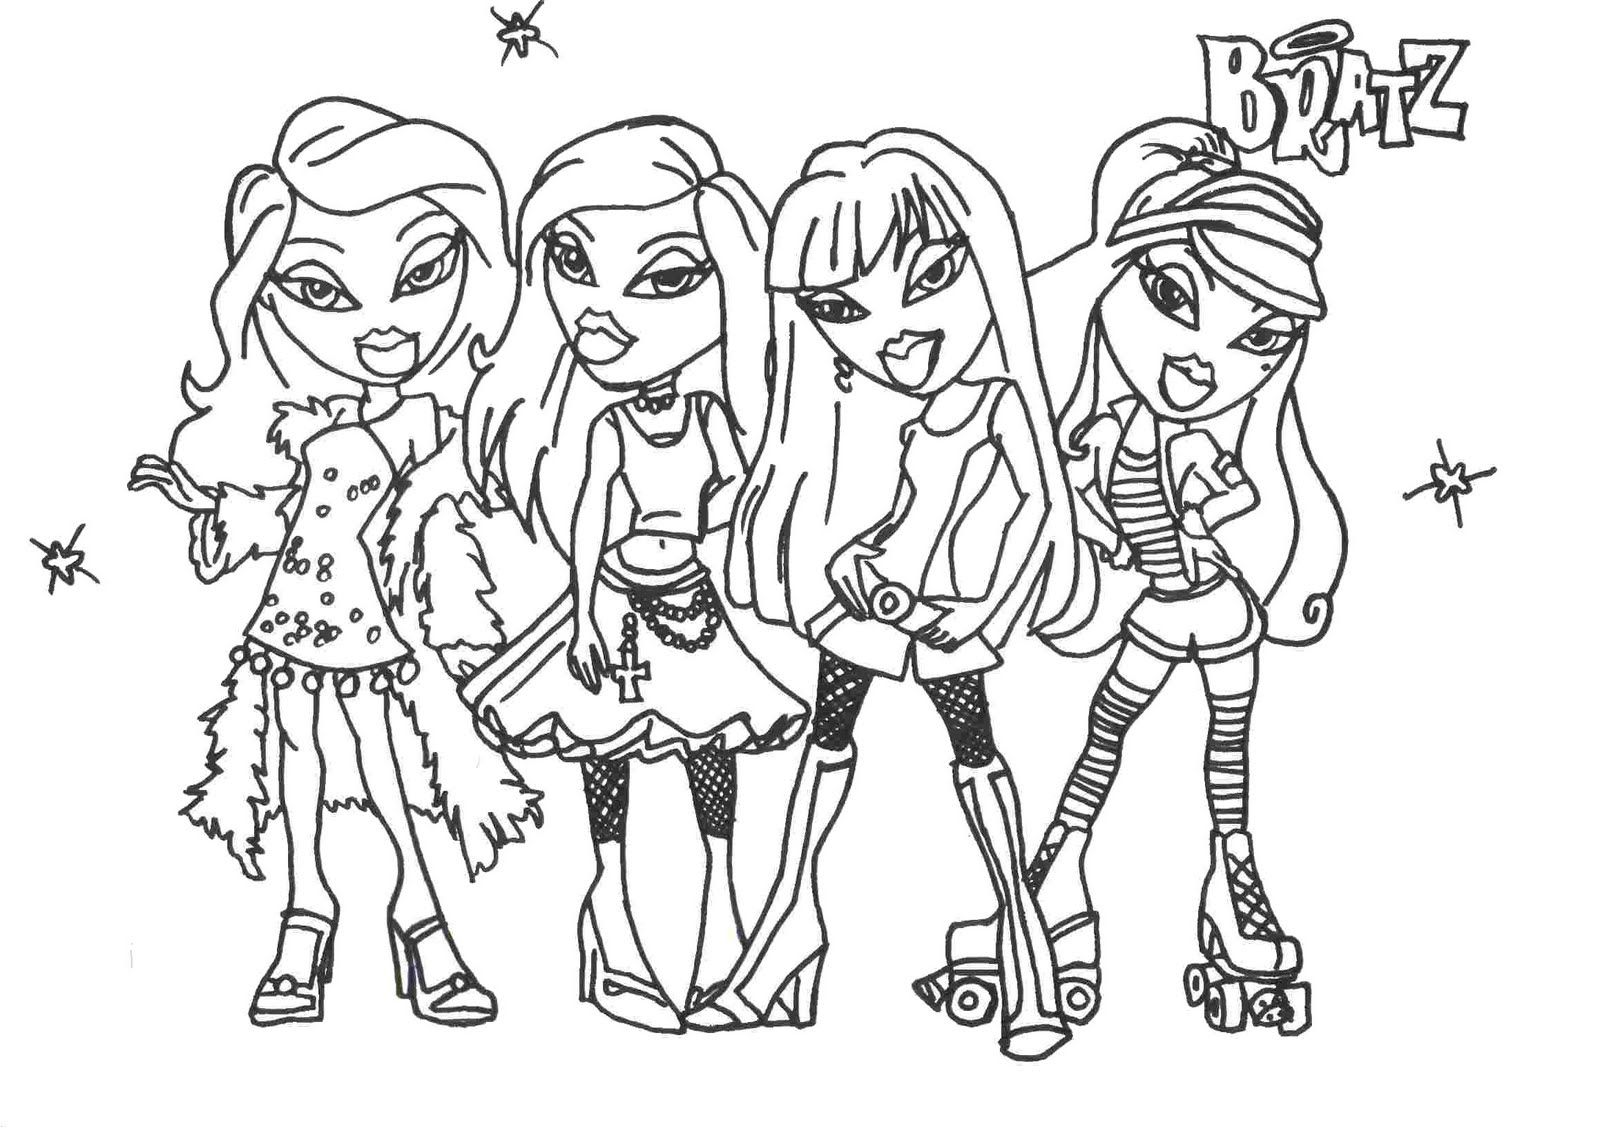 Coloring pictures disney characters - Bratz Glamor Girls Coloring Pages Disney Princess Coloring Pages